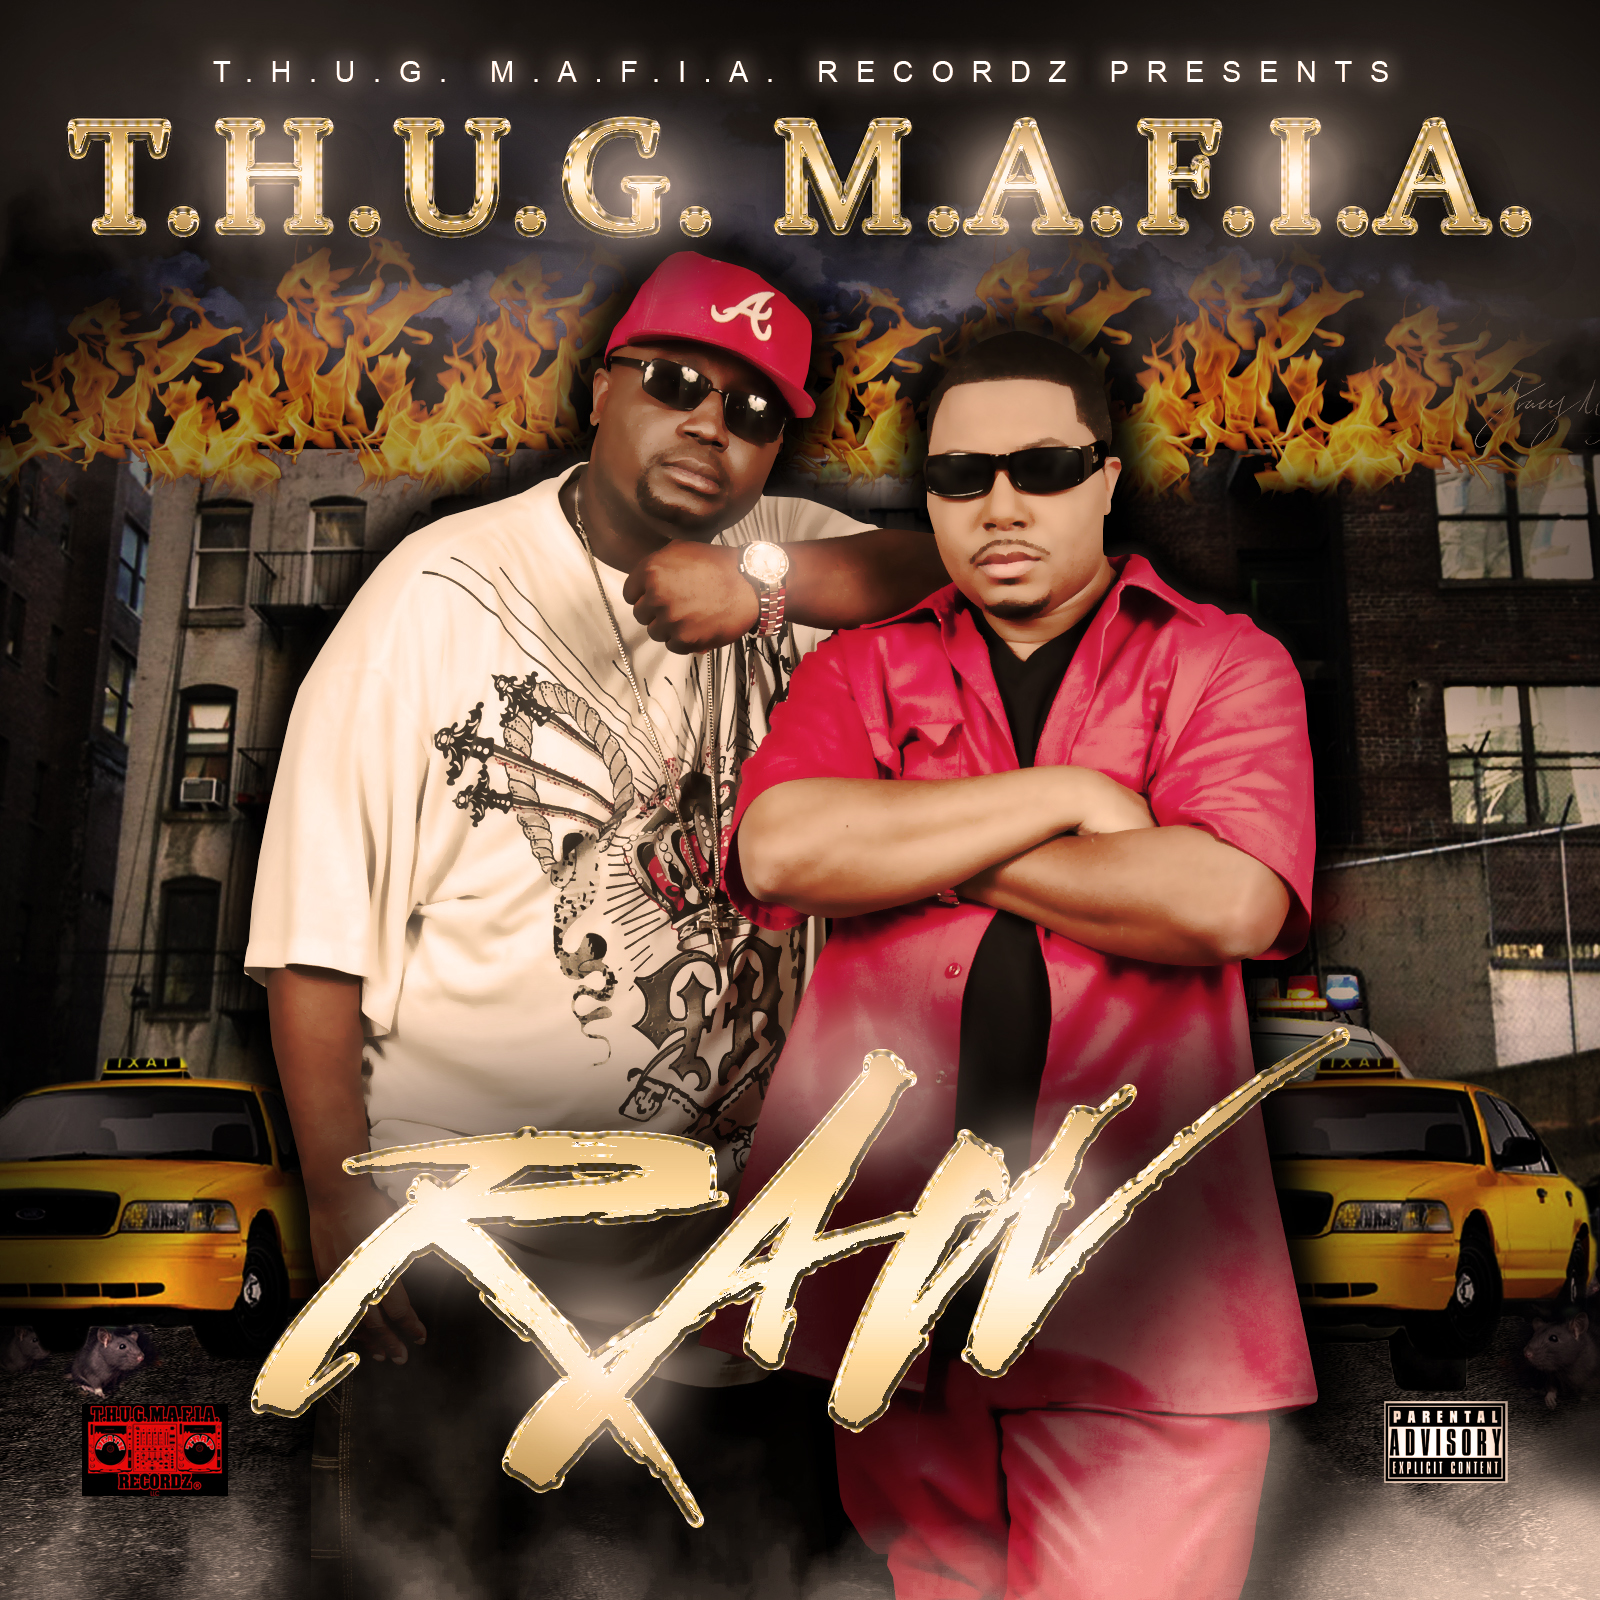 Album artwork for T.H.U.G M.A.F.I.A.